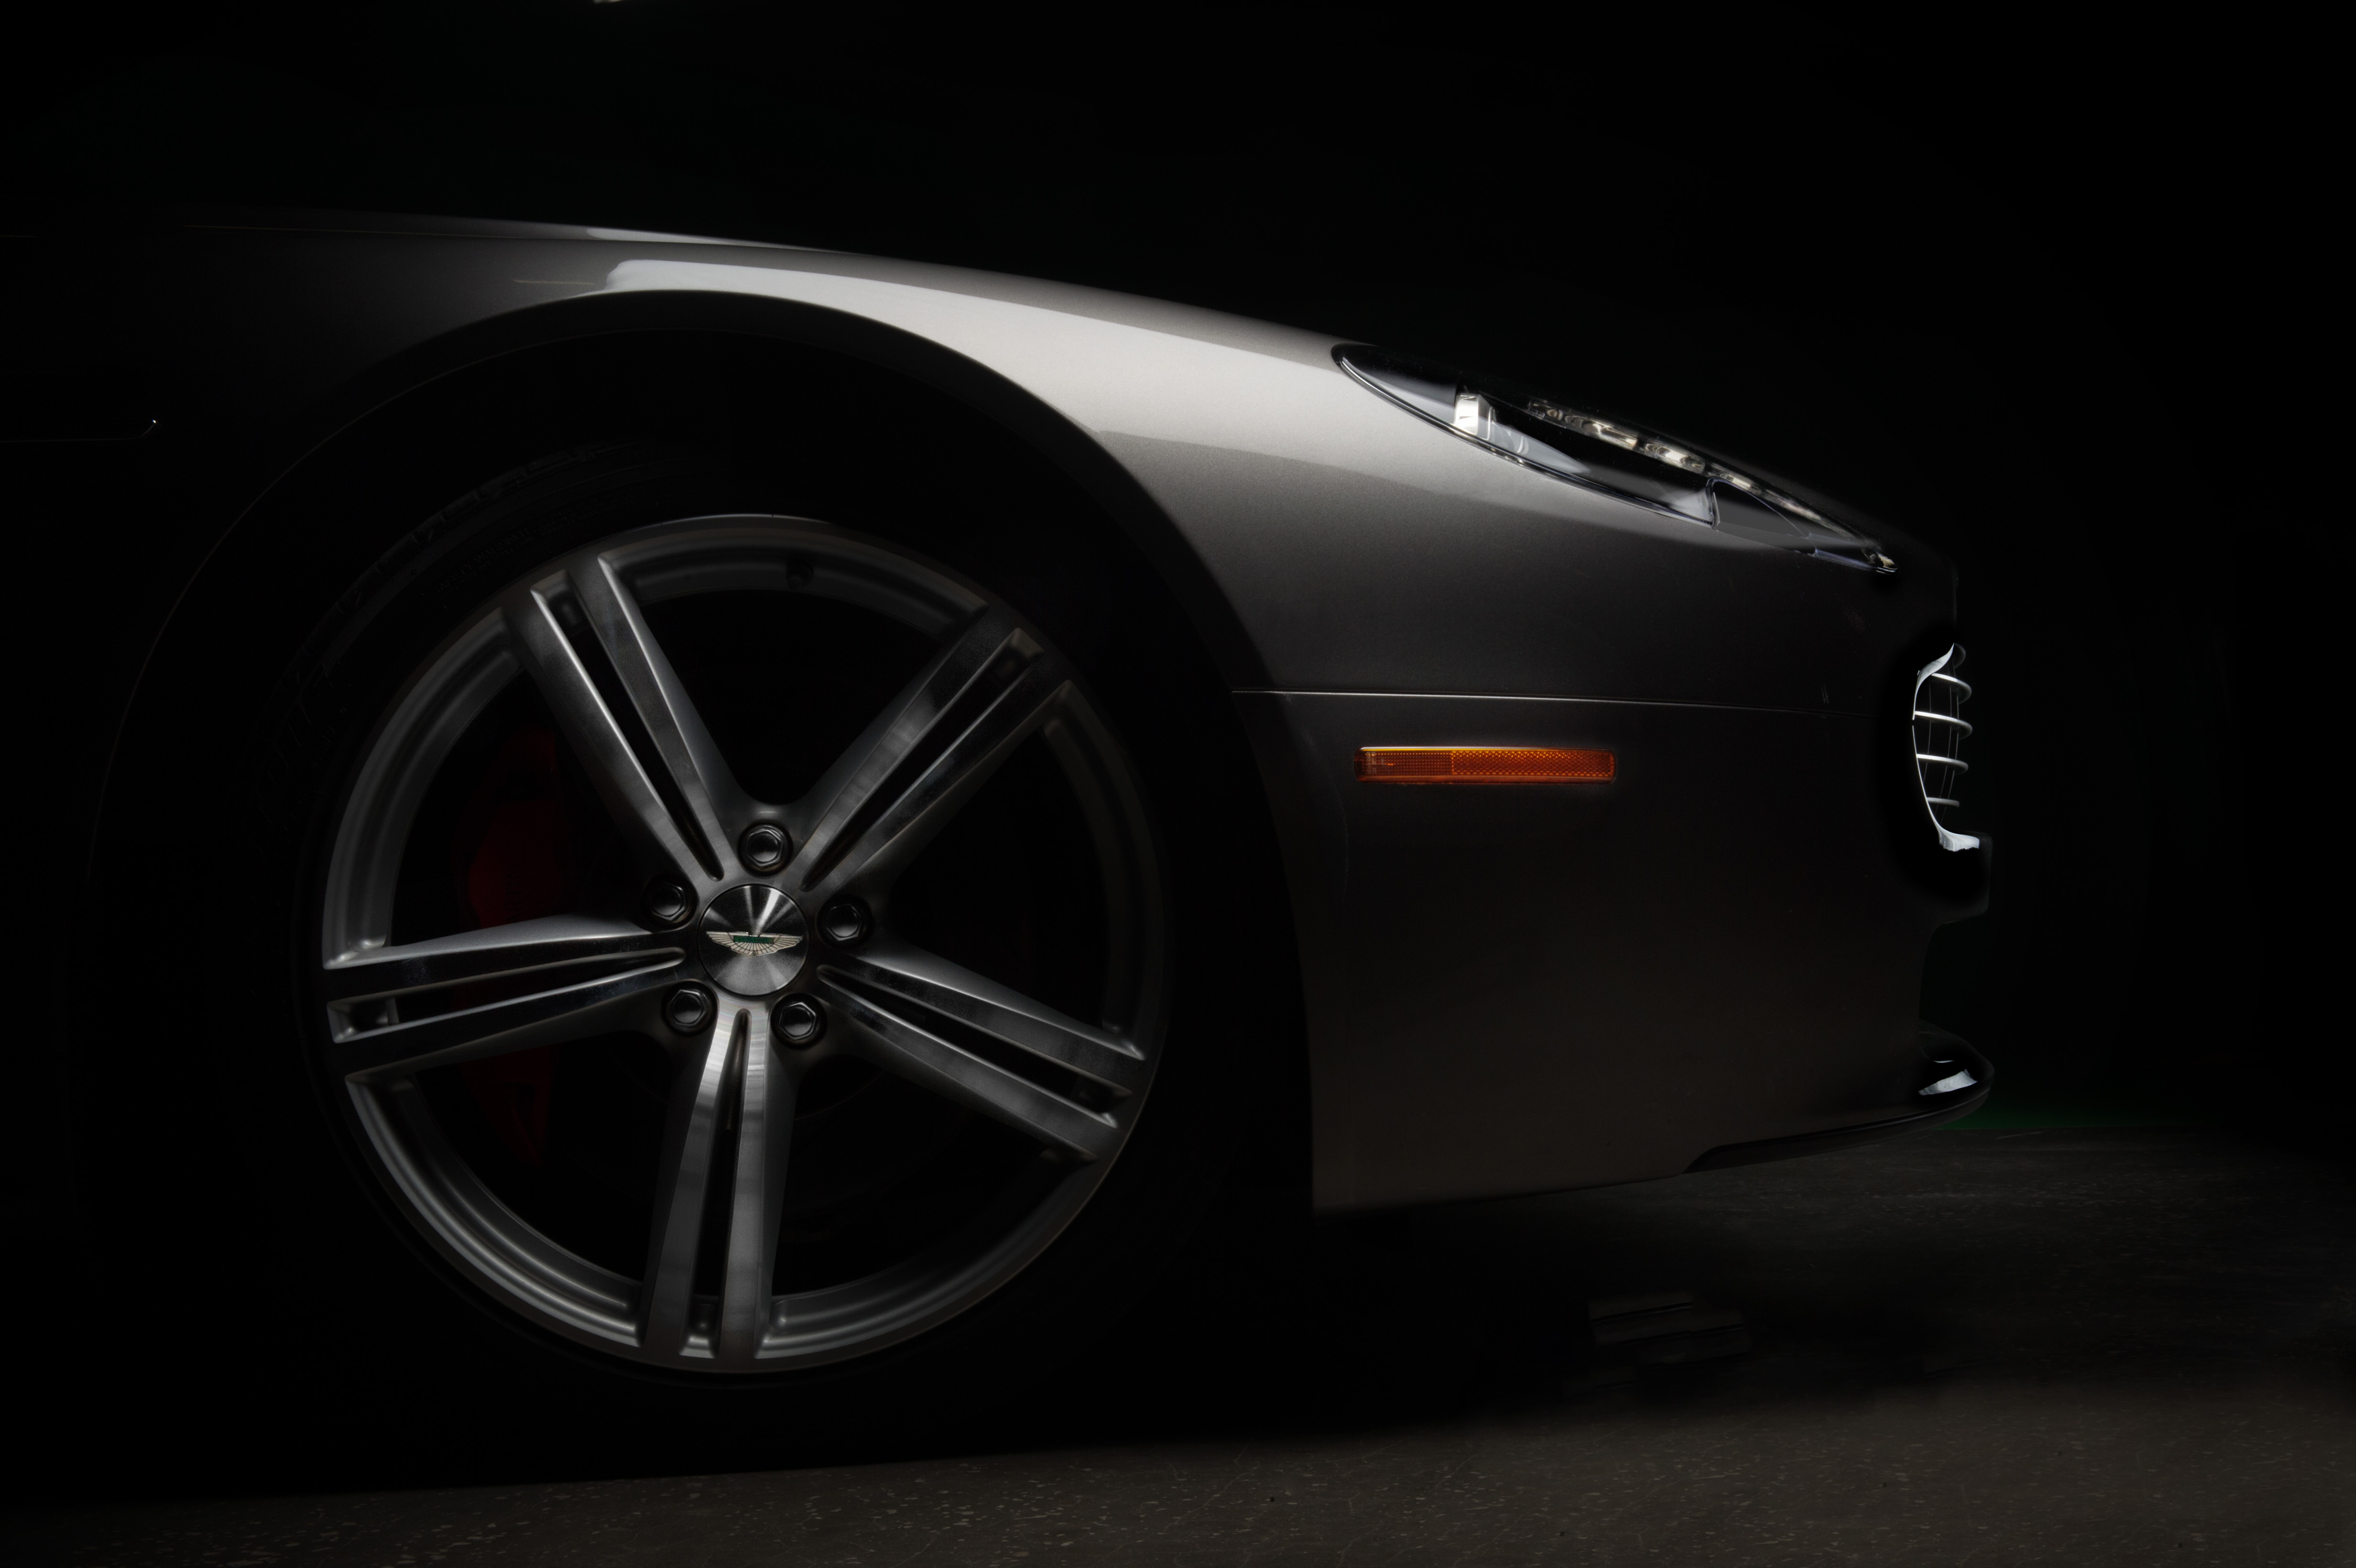 Automotive photography by scott kelby exposure